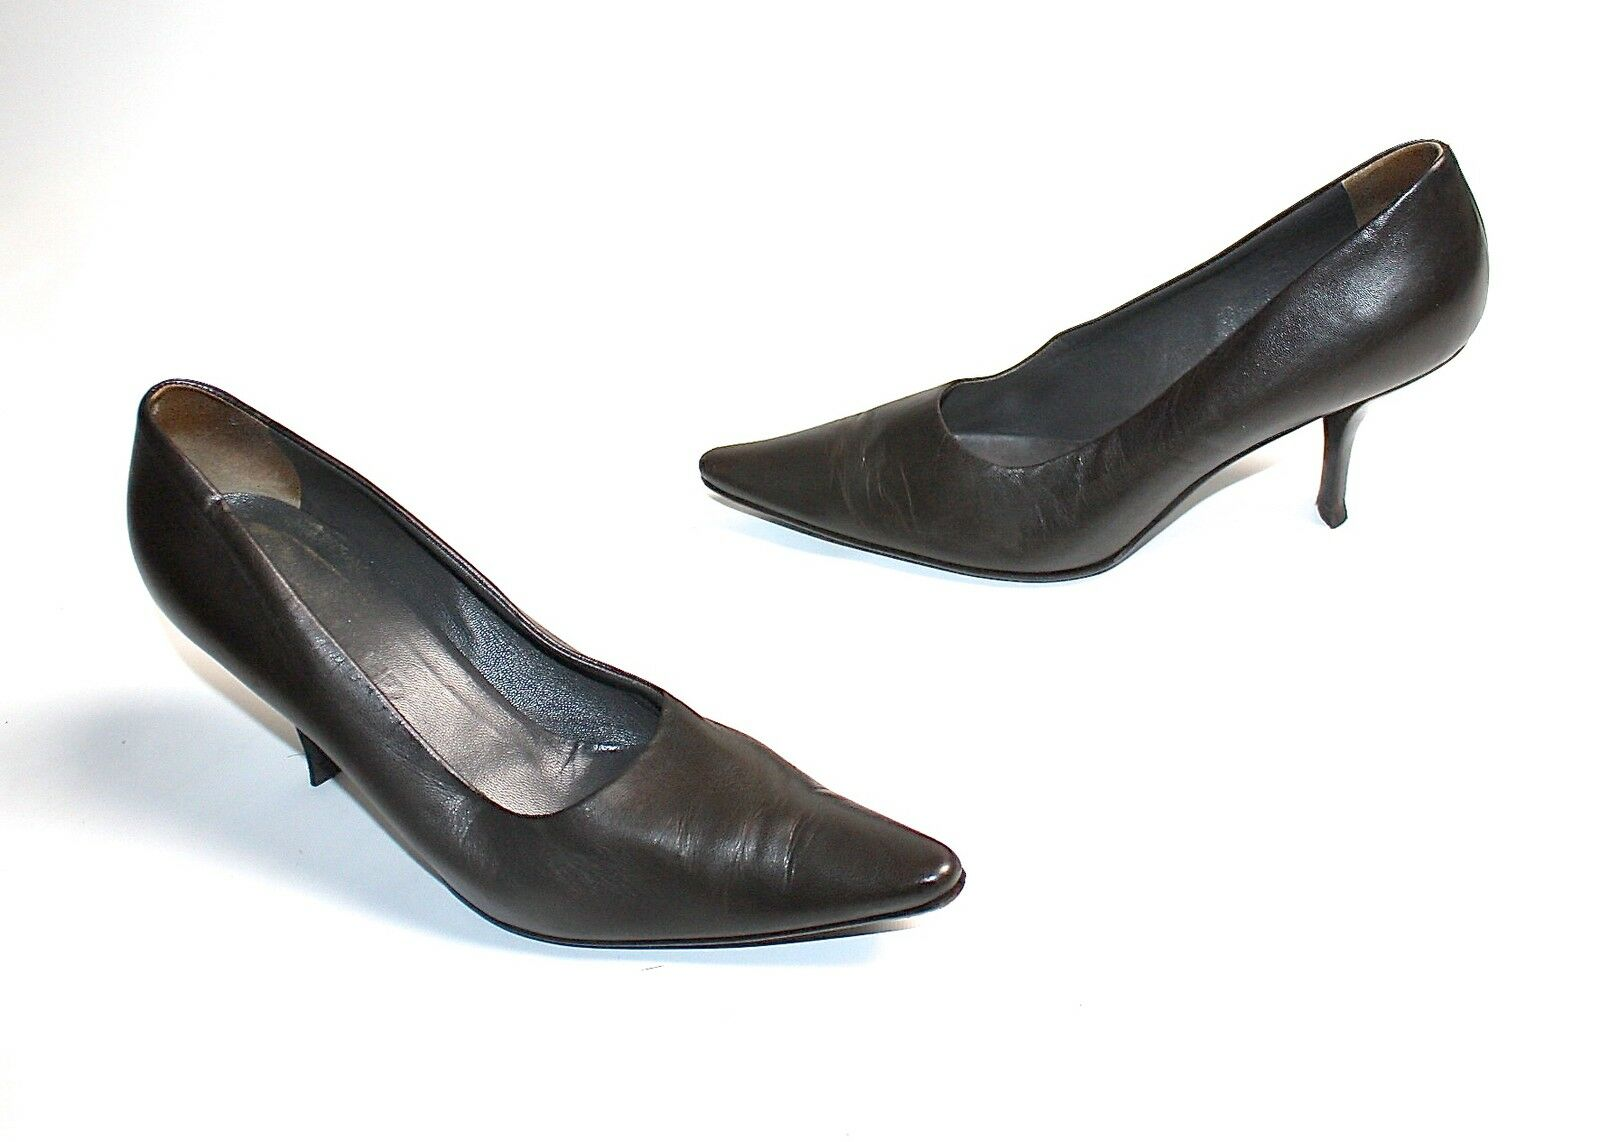 JIL SANDER    DAMENSCHUHE PUMPS BUSINESS LEDER grey-brown 38